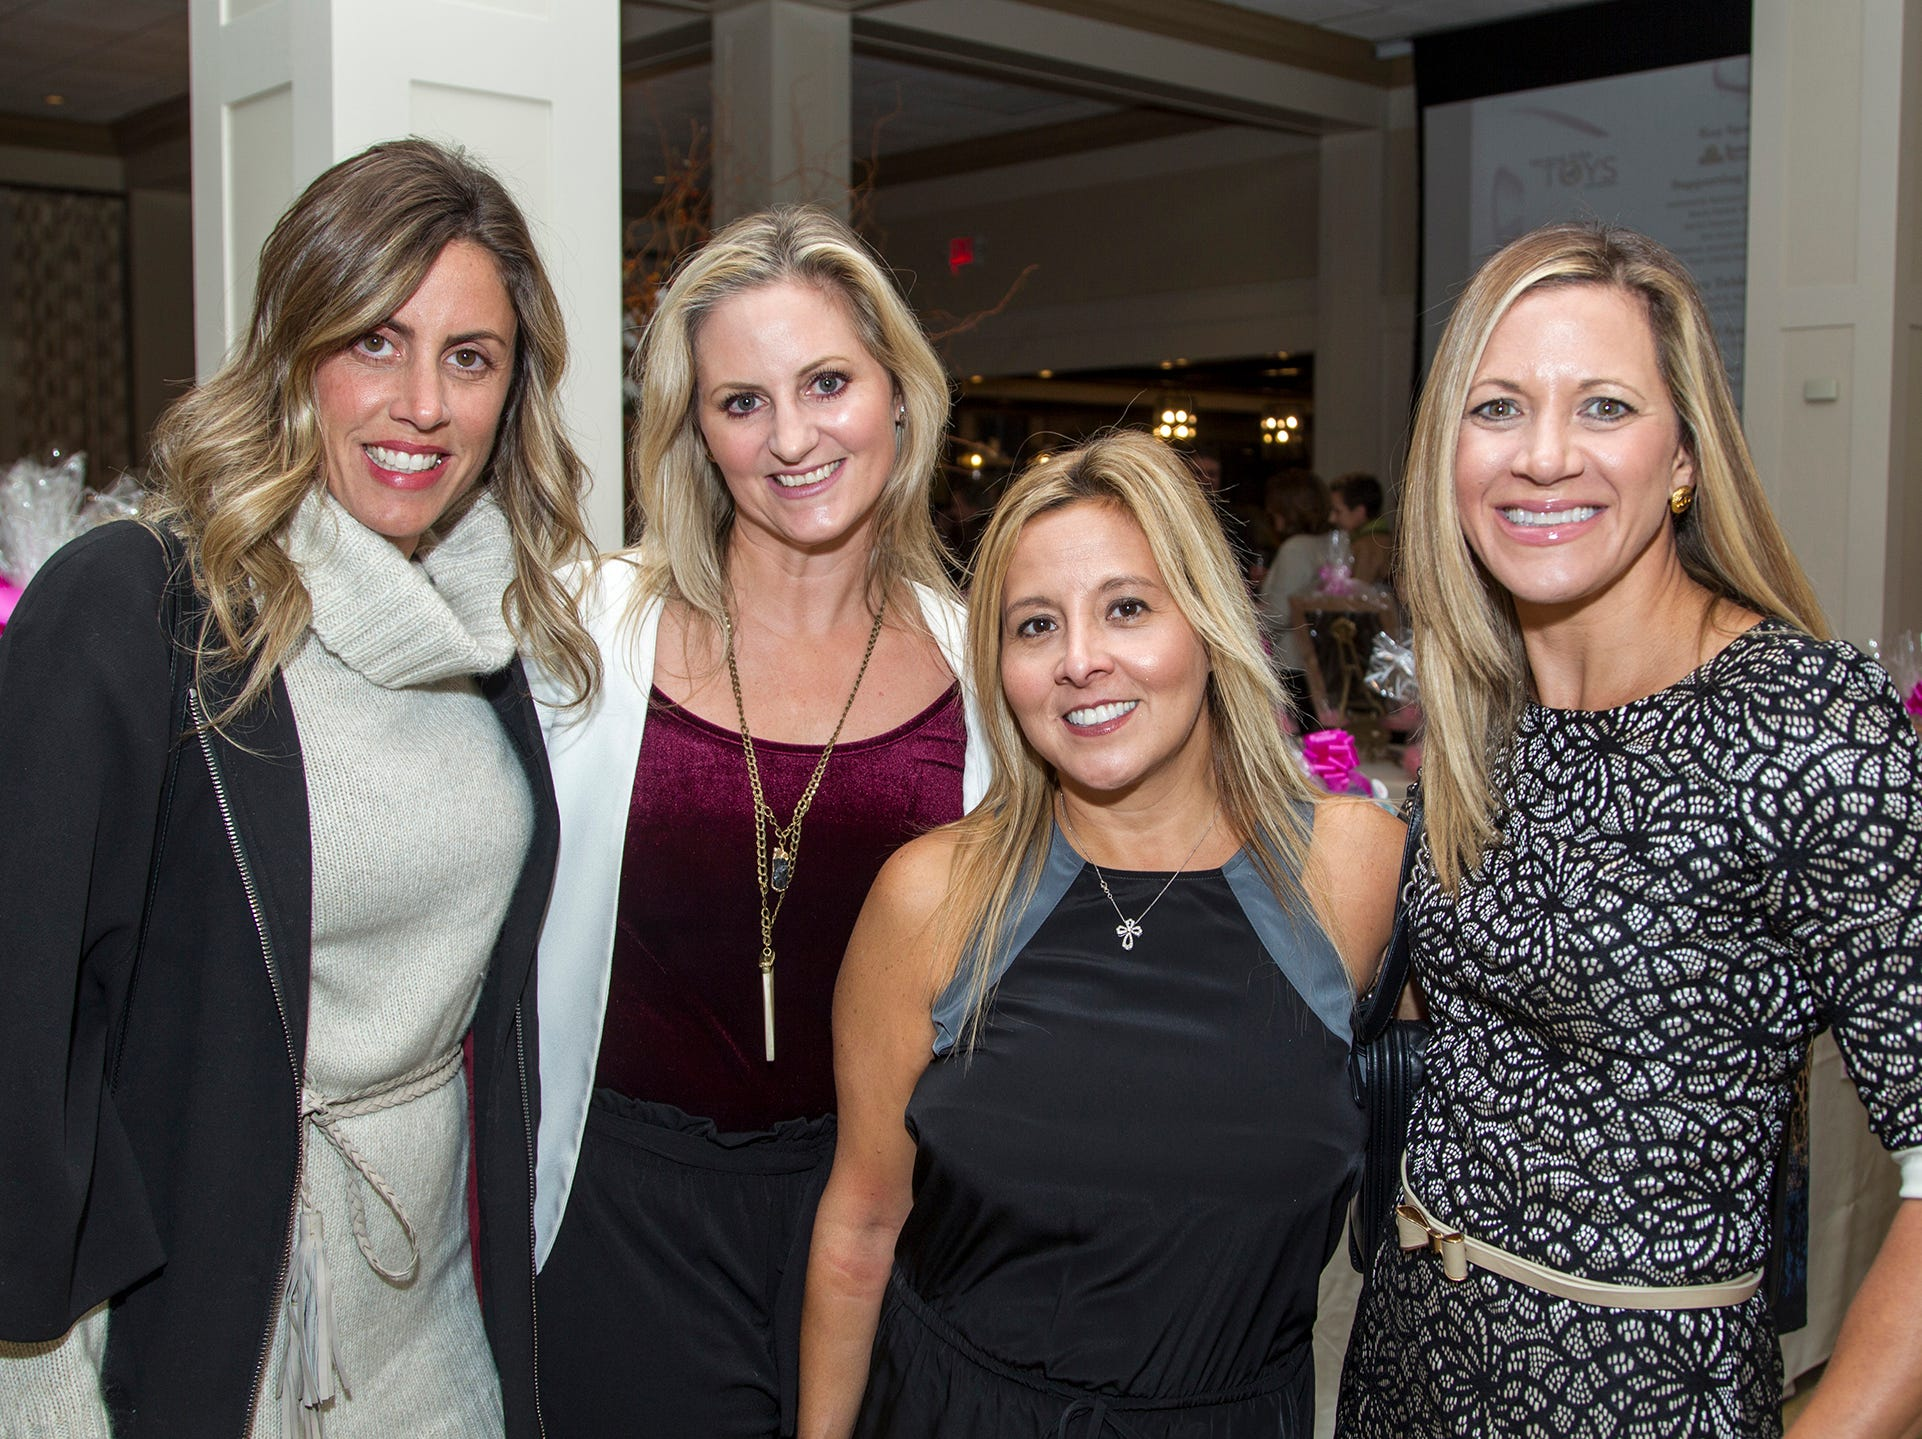 Marey Benner, Elissa Silverman, Sally Mc Quade, Kristine McKee. Spring Lake Toys Foundation held its 3rd annual fundraising gala luncheon at Indian Trail Club in Franklin Lakes. The luncheon fundraiser raises funds for children with illnesses. 10/18/2018